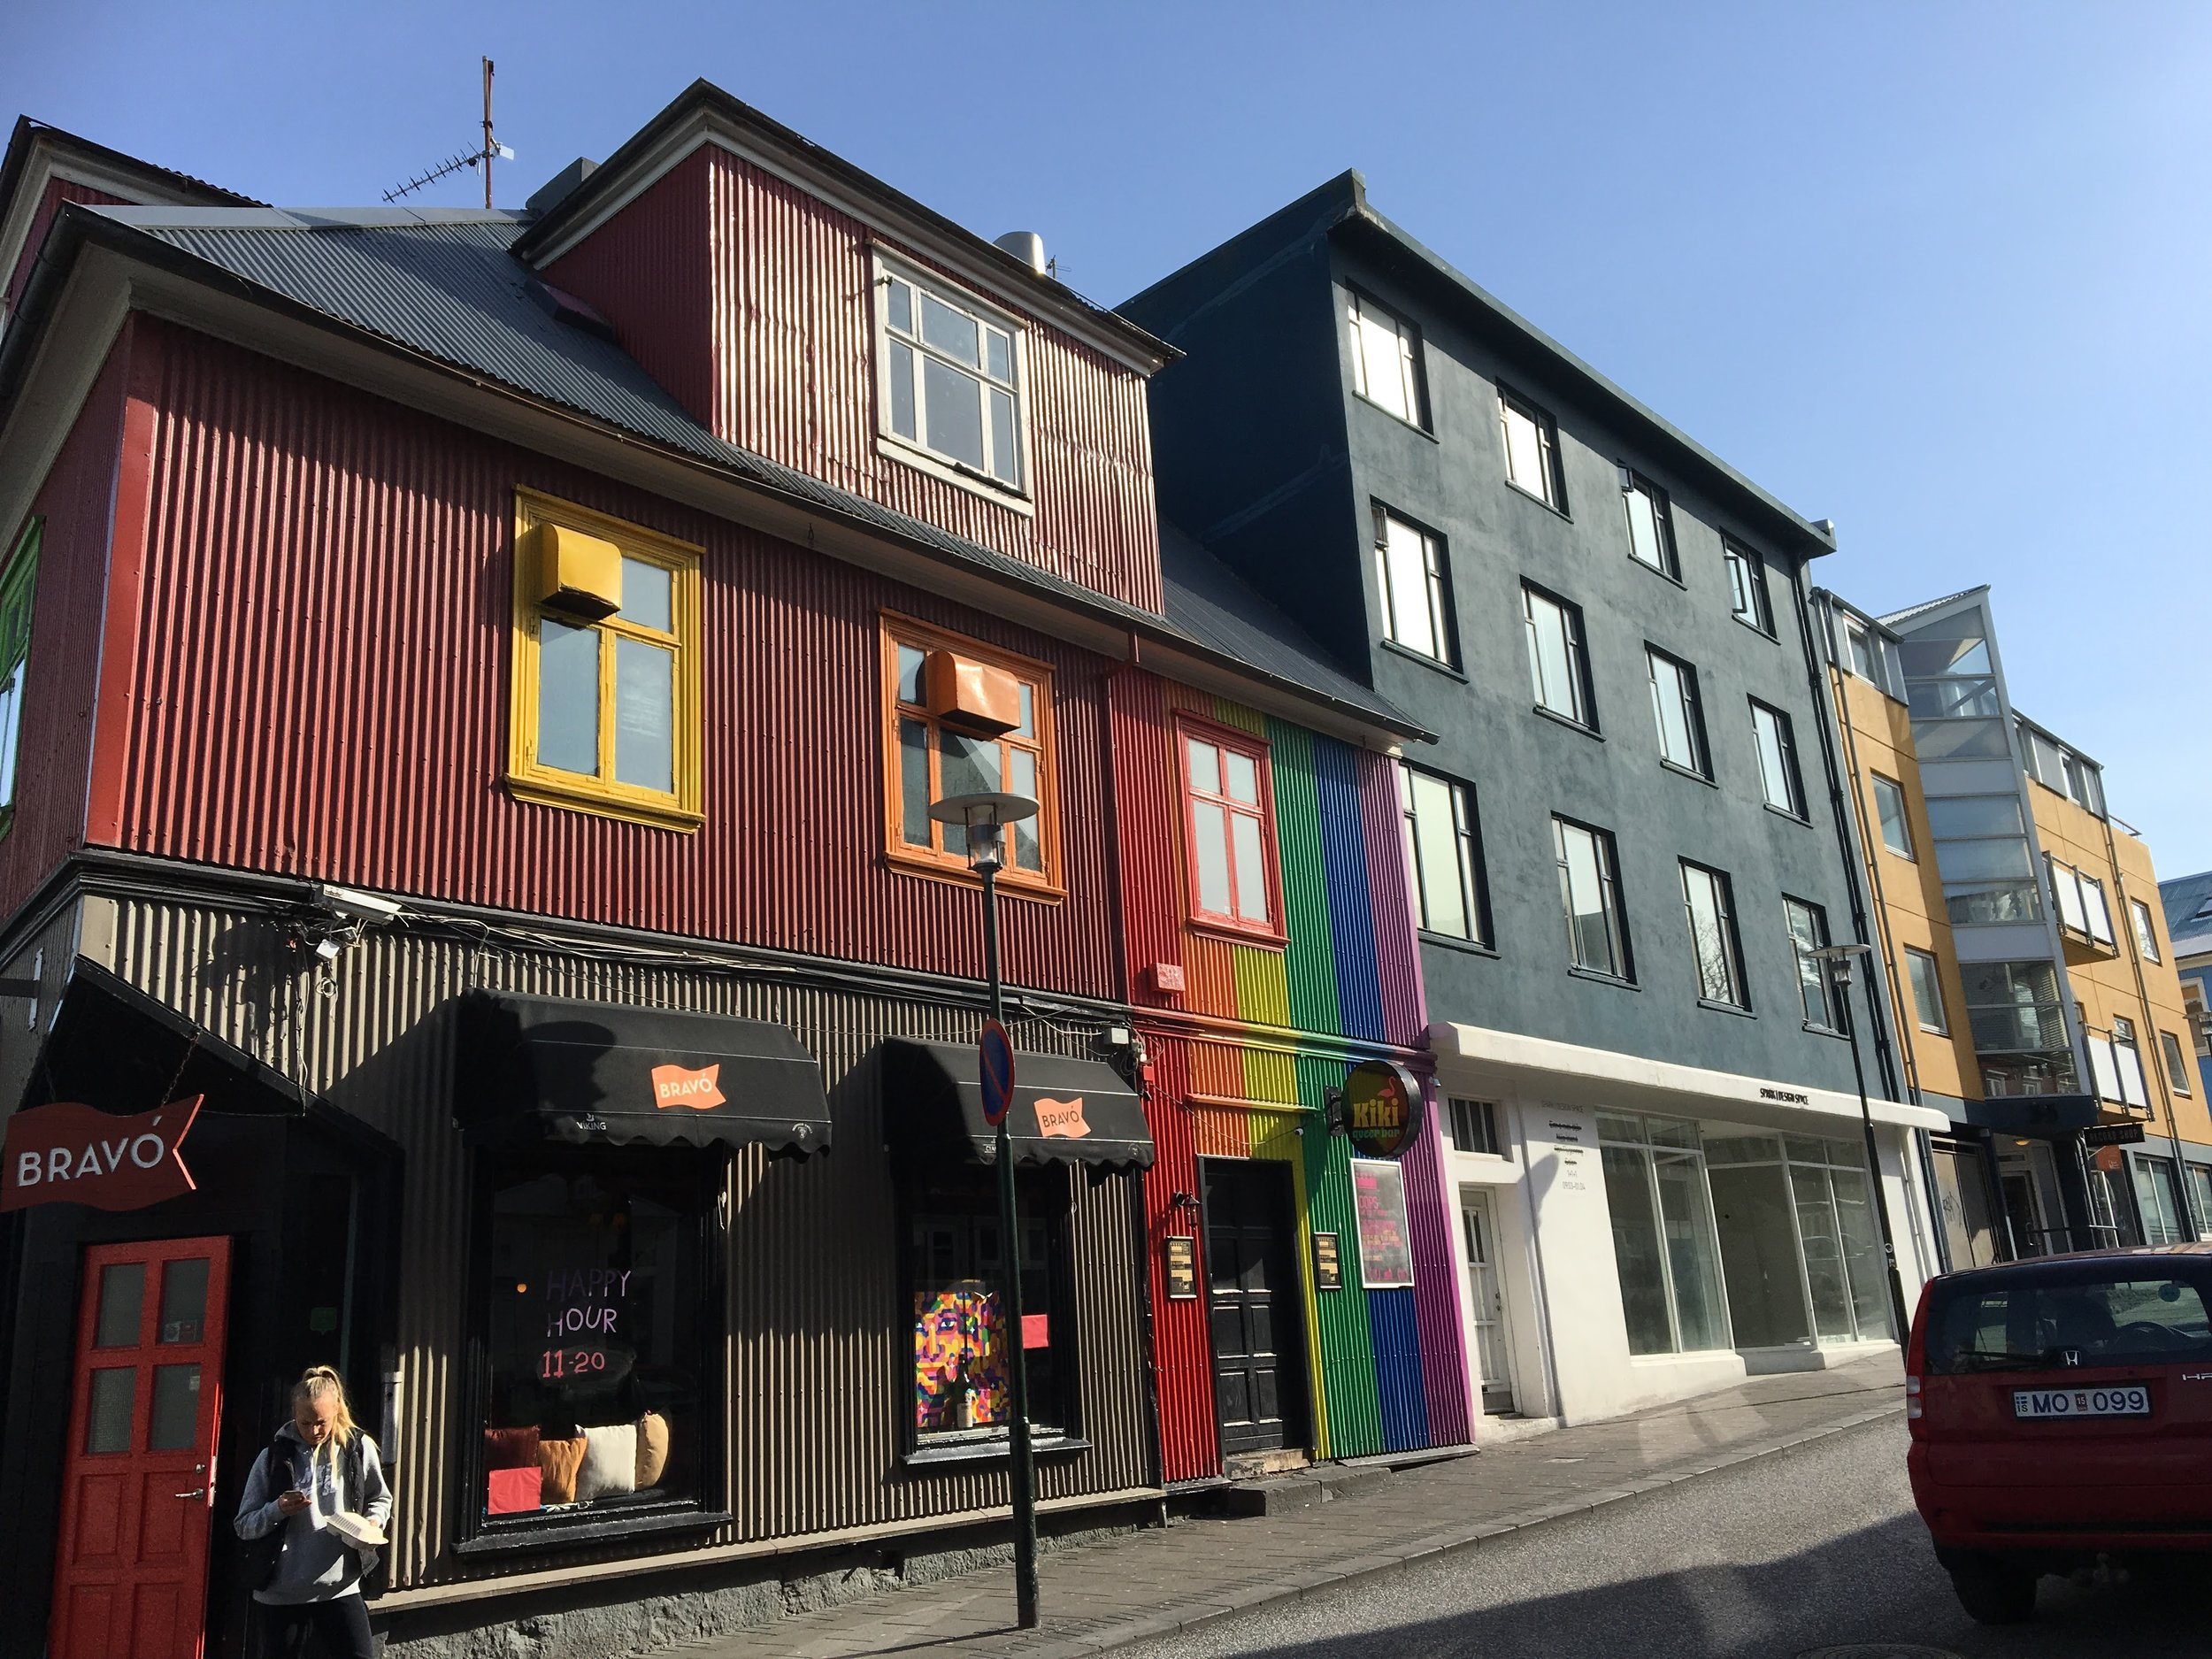 Iceland buildings on street - 55 by 55 Travel